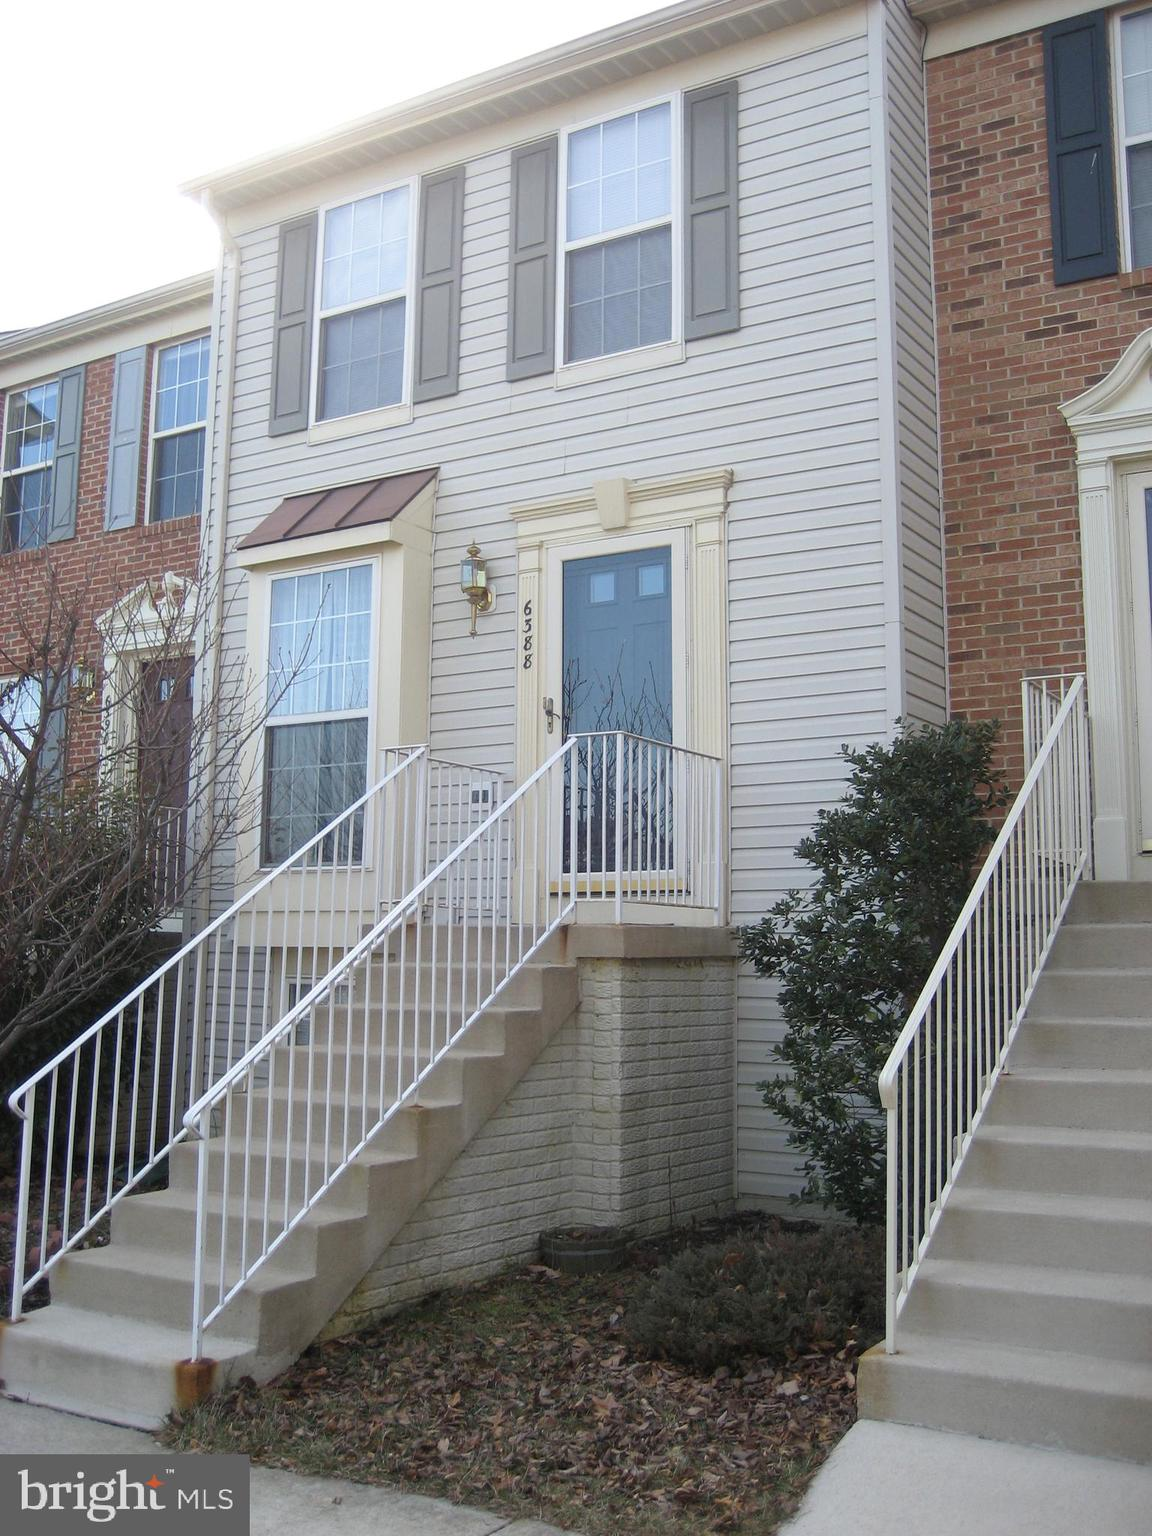 HURRY! Great location! 10 miles south of Arlington where the new Amazon HQ will be based. Take the Metro to work (walk to Metro or take a community shuttle during rush hours in AM and PM). Minutes to 495/395/95 interchange. Mall, shops, restaurants, movie theater are less than 3 miles away. Charming townhouse with granite counters and ceramic tiles in the kitchen, direct access to large deck, 1/2 bath. UL with 2 bedrooms each with direct access to a shared double-sink bath. LL with a large open studio for office/additional bedroom/in-law suit with its own entrance and bathroom. Fenced backyard with patio under deck and garden area. Community pool. 2 reserved off-street parking spaces. New Roof (50-yr warranty and 10-yr workmanship warranty/annual roof inspection transferable to new owner). House to be repainted; new fridge and stove/cooking range; or seller's credit. Home warranty for 6 months.